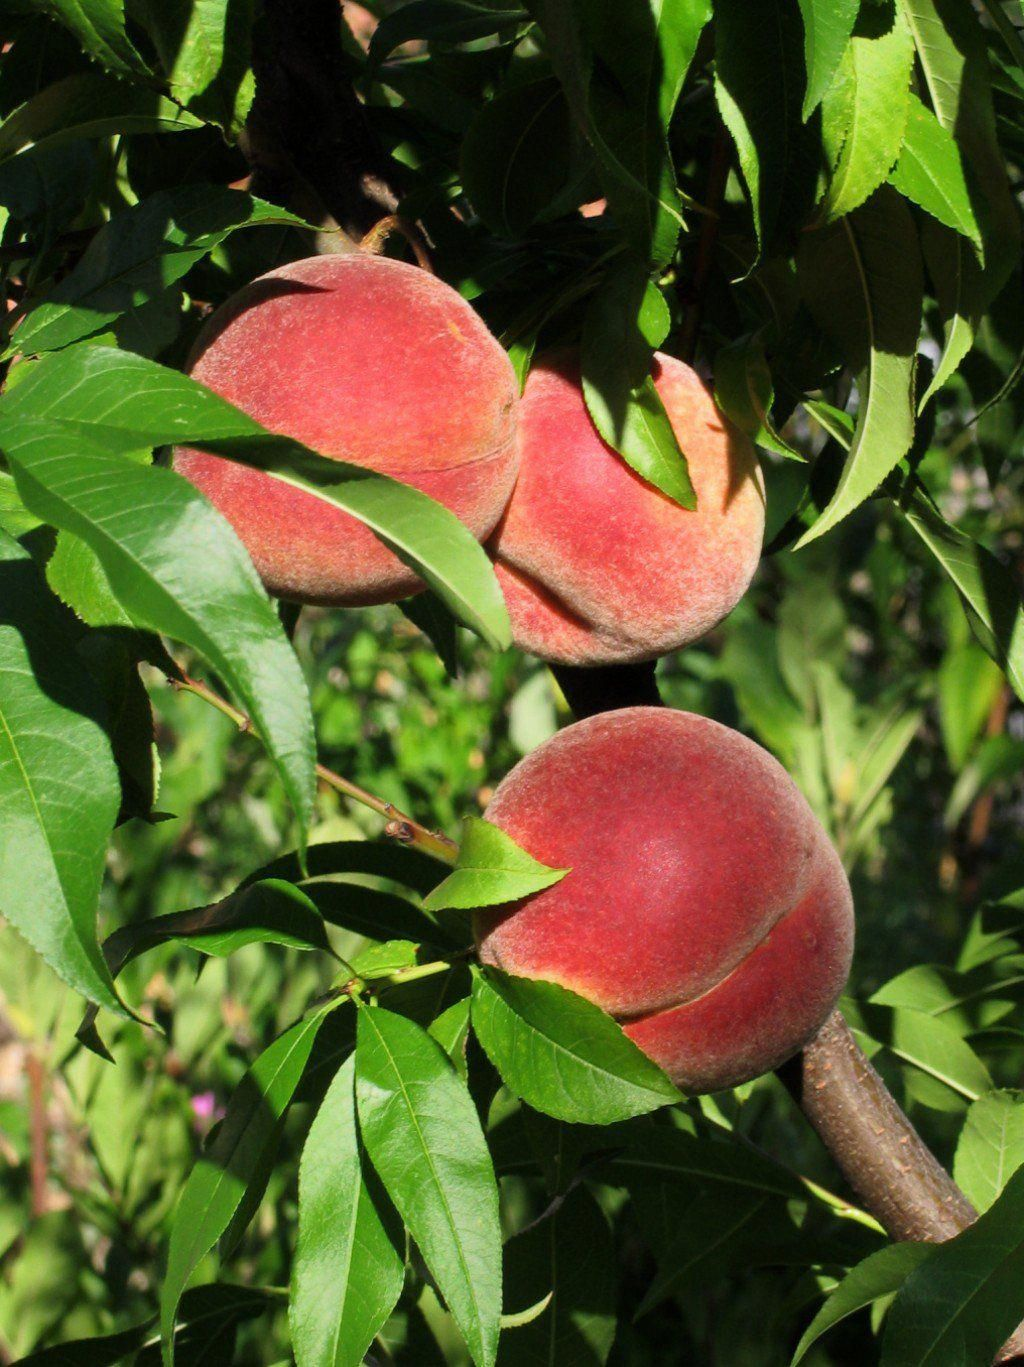 Have You Been Wondering How To Grow A Peach Tree From Seed Look No Further From Planting To Harvesting G Growing Fruit Trees Peach Trees Growing Peach Trees